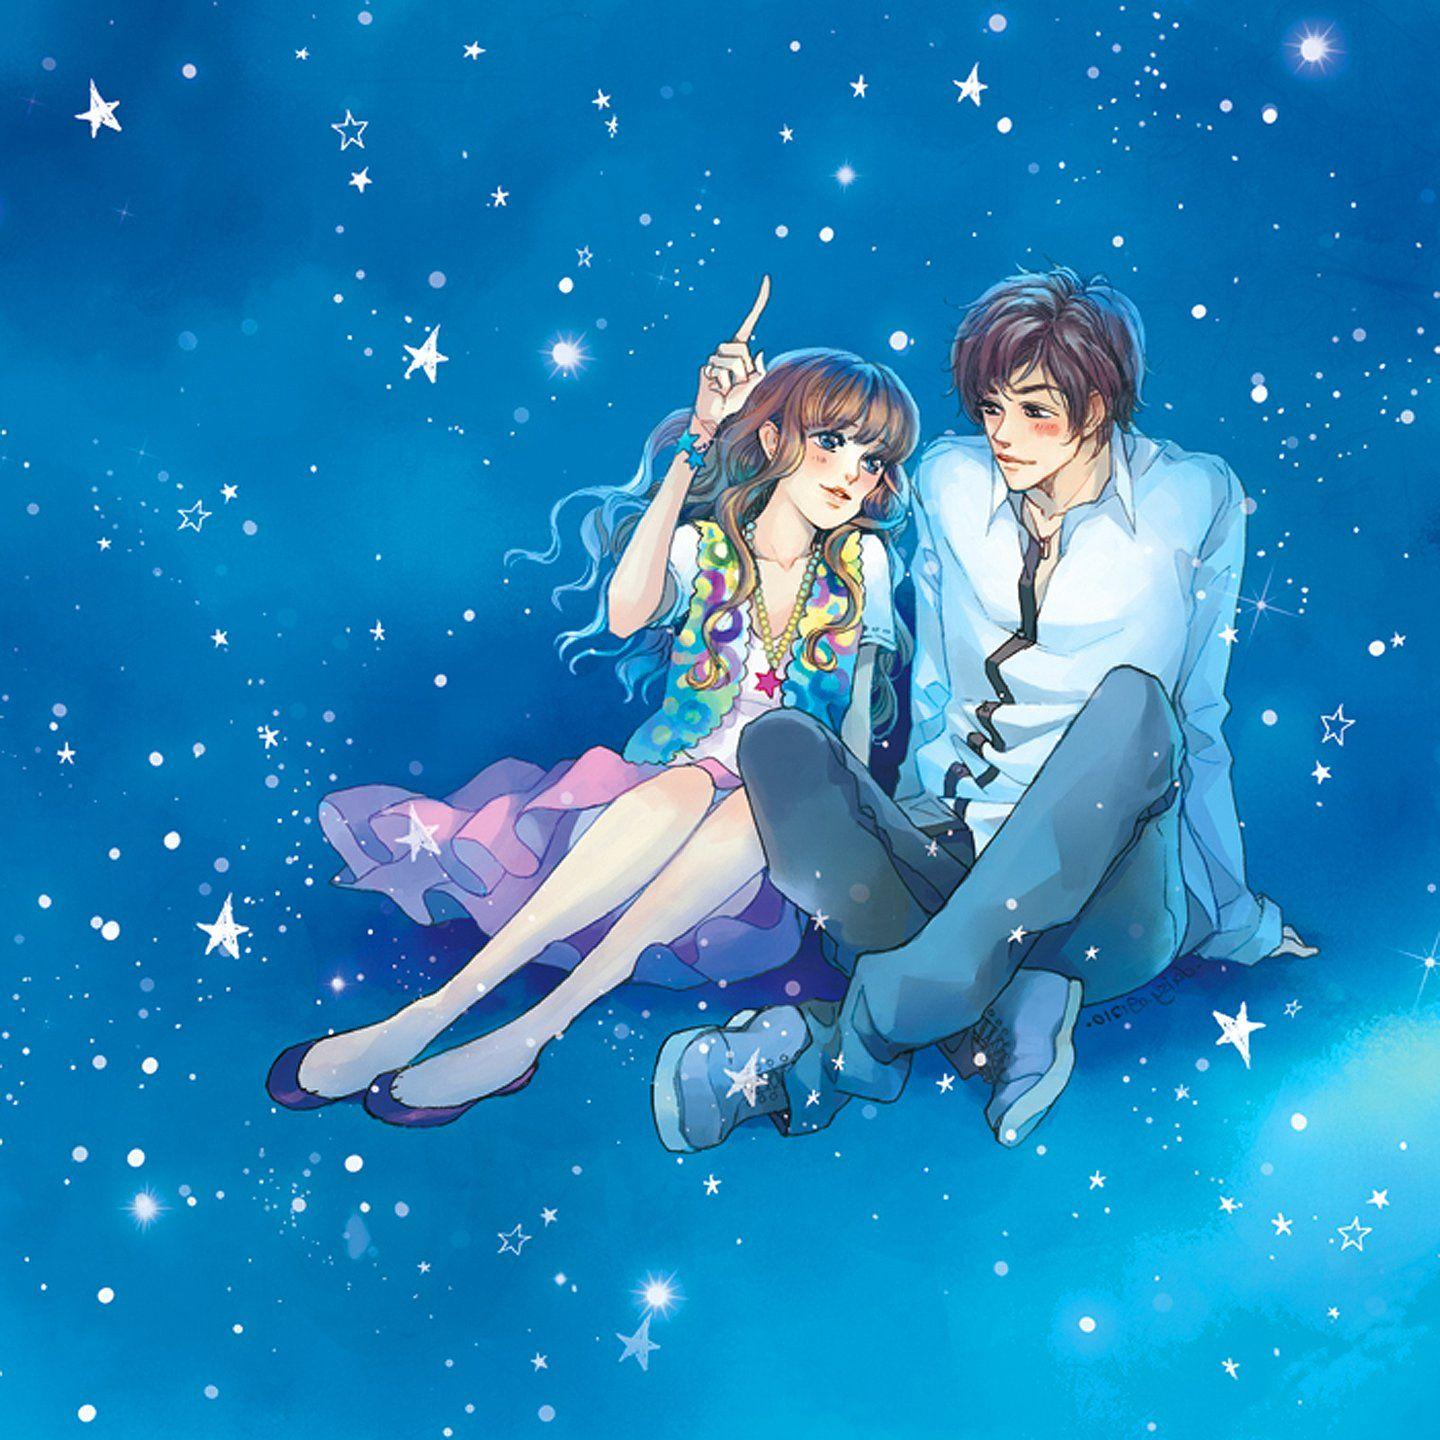 Romantic Anime Couples Wallpapers